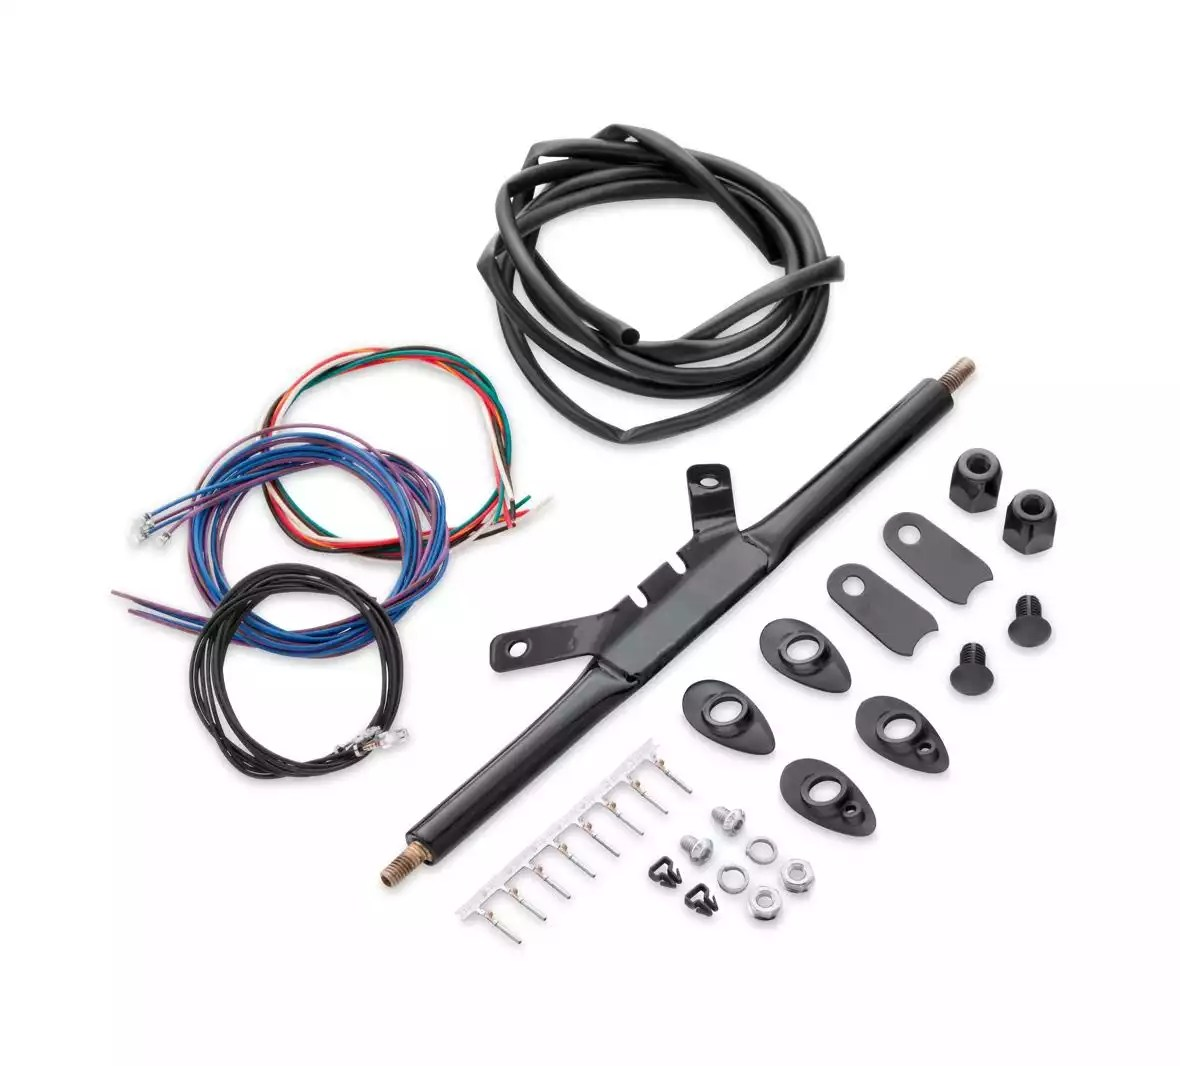 67800065 Turn Signal Relocation Kit at Thunderbike Shop